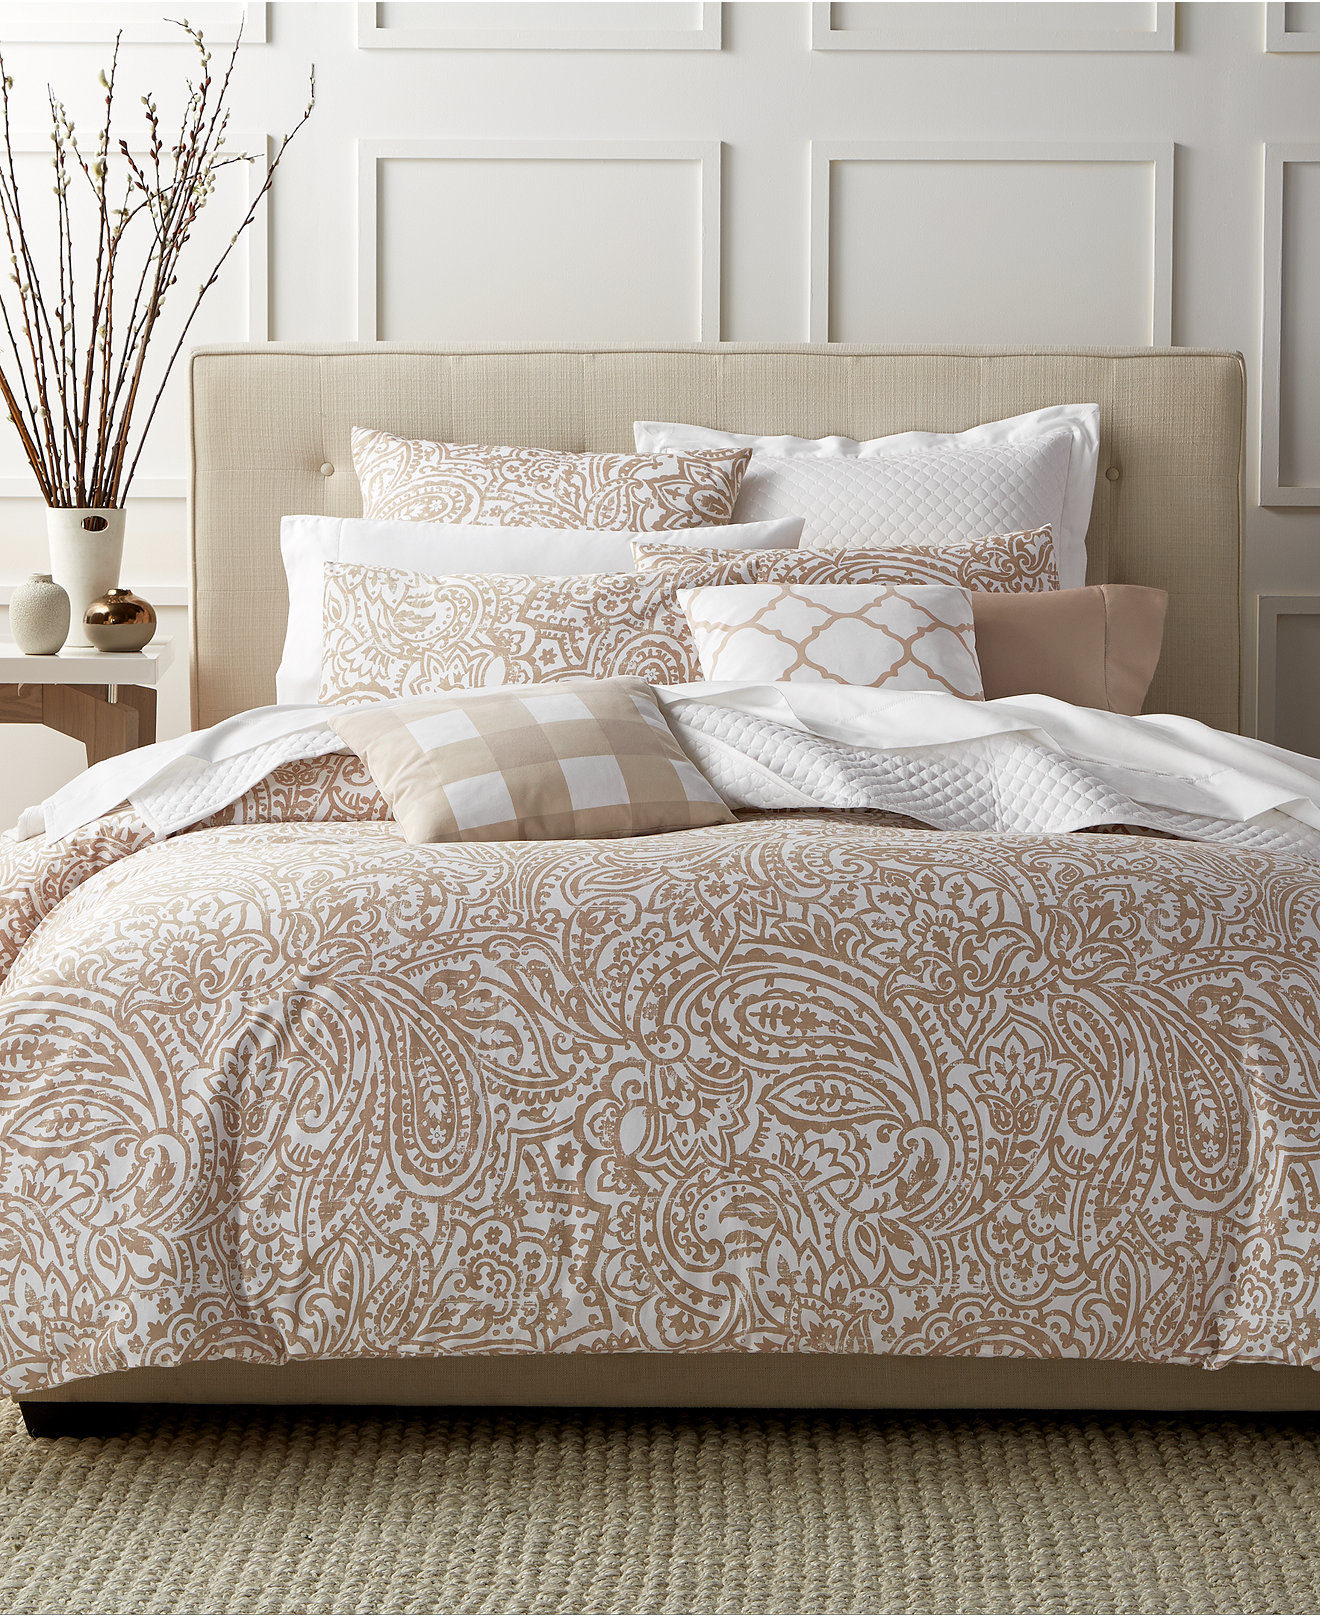 Damask bedding twin - Charter Club Damask Designs Paisley Taupe Bedding Collection Created For Macy S Bedding Collections Bed Bath Macy S